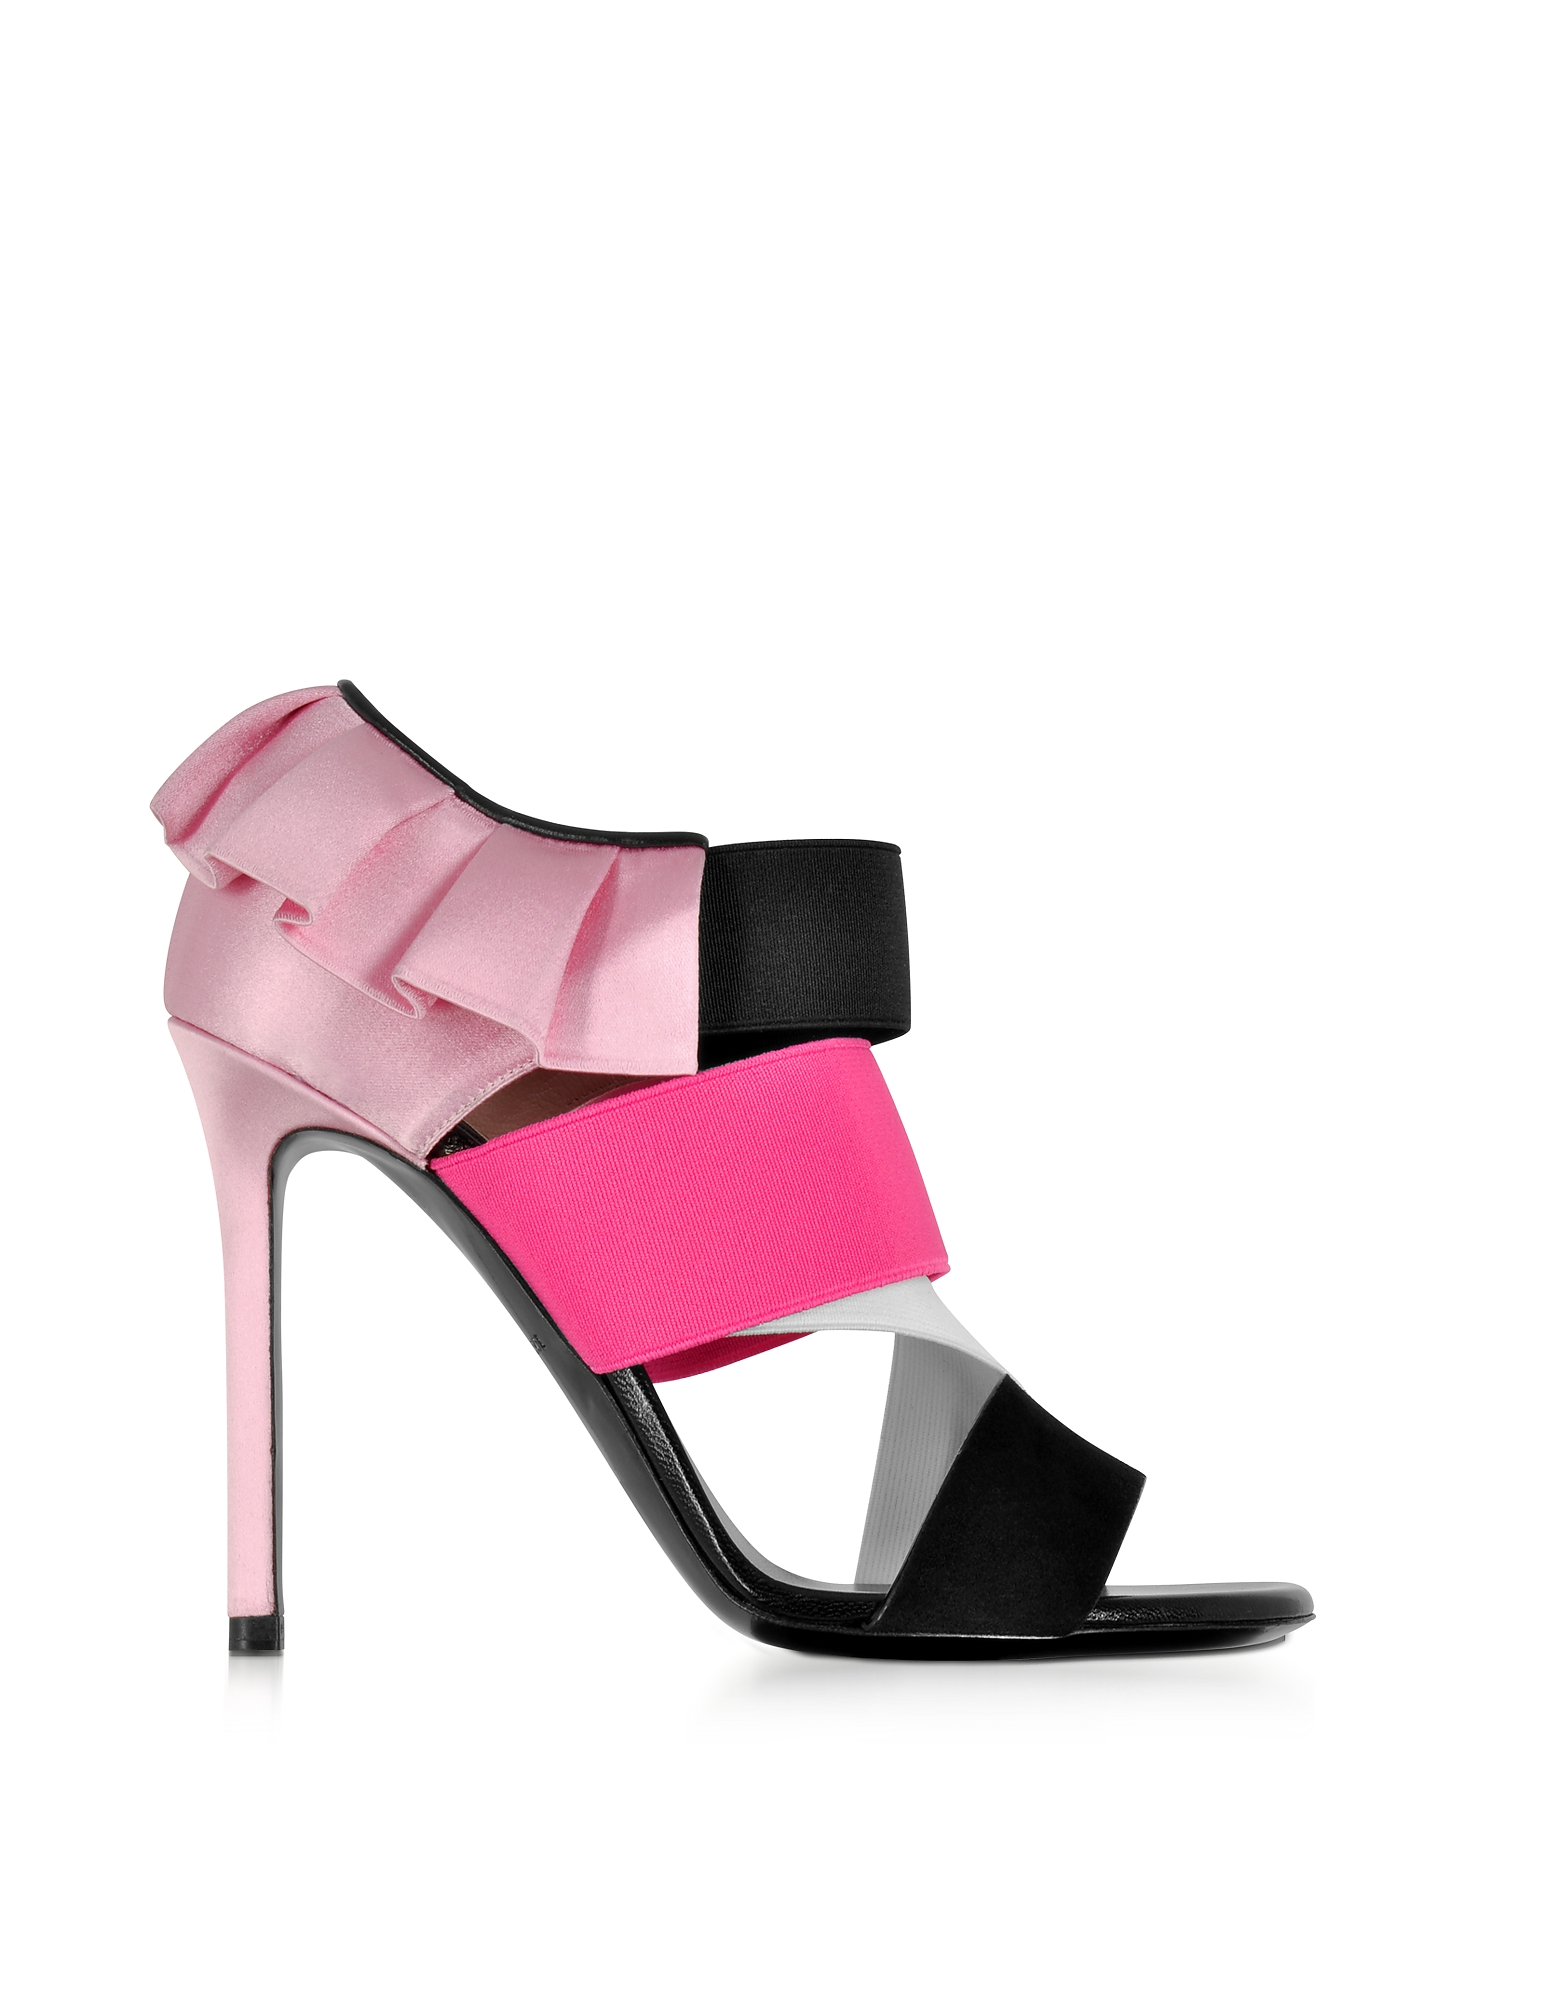 Emilio Pucci Shoes, Black, White and Fuchsia Suede and Silk High Heel Sandals